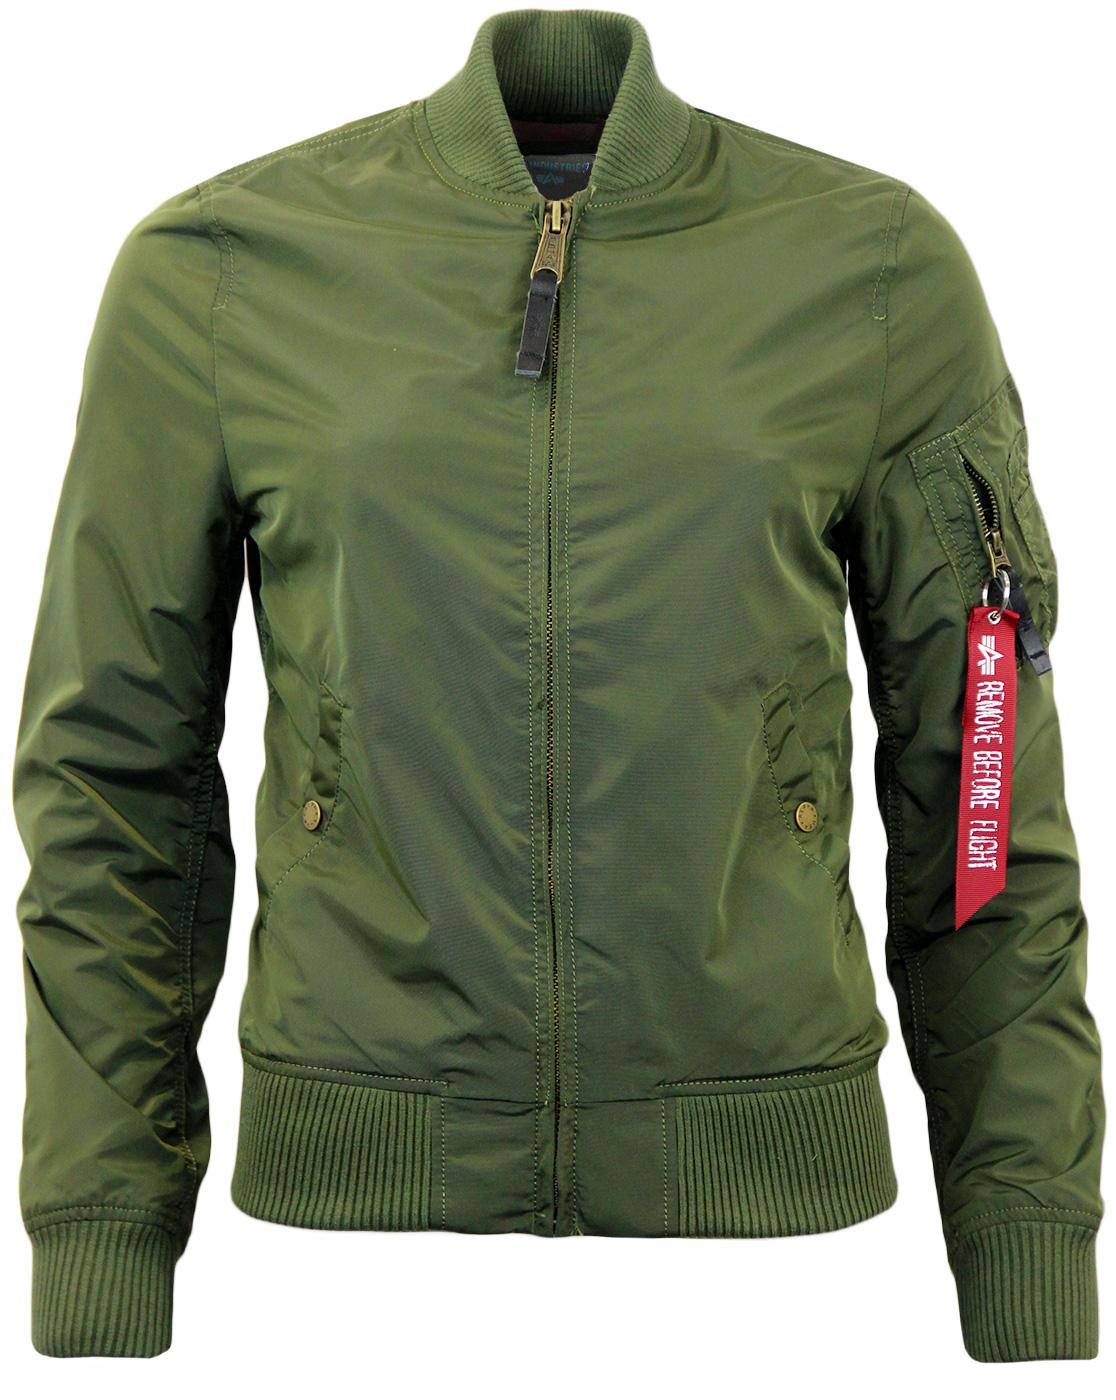 MA1 TT ALPHA INDUSTRIES Womens Bomber Jacket DG